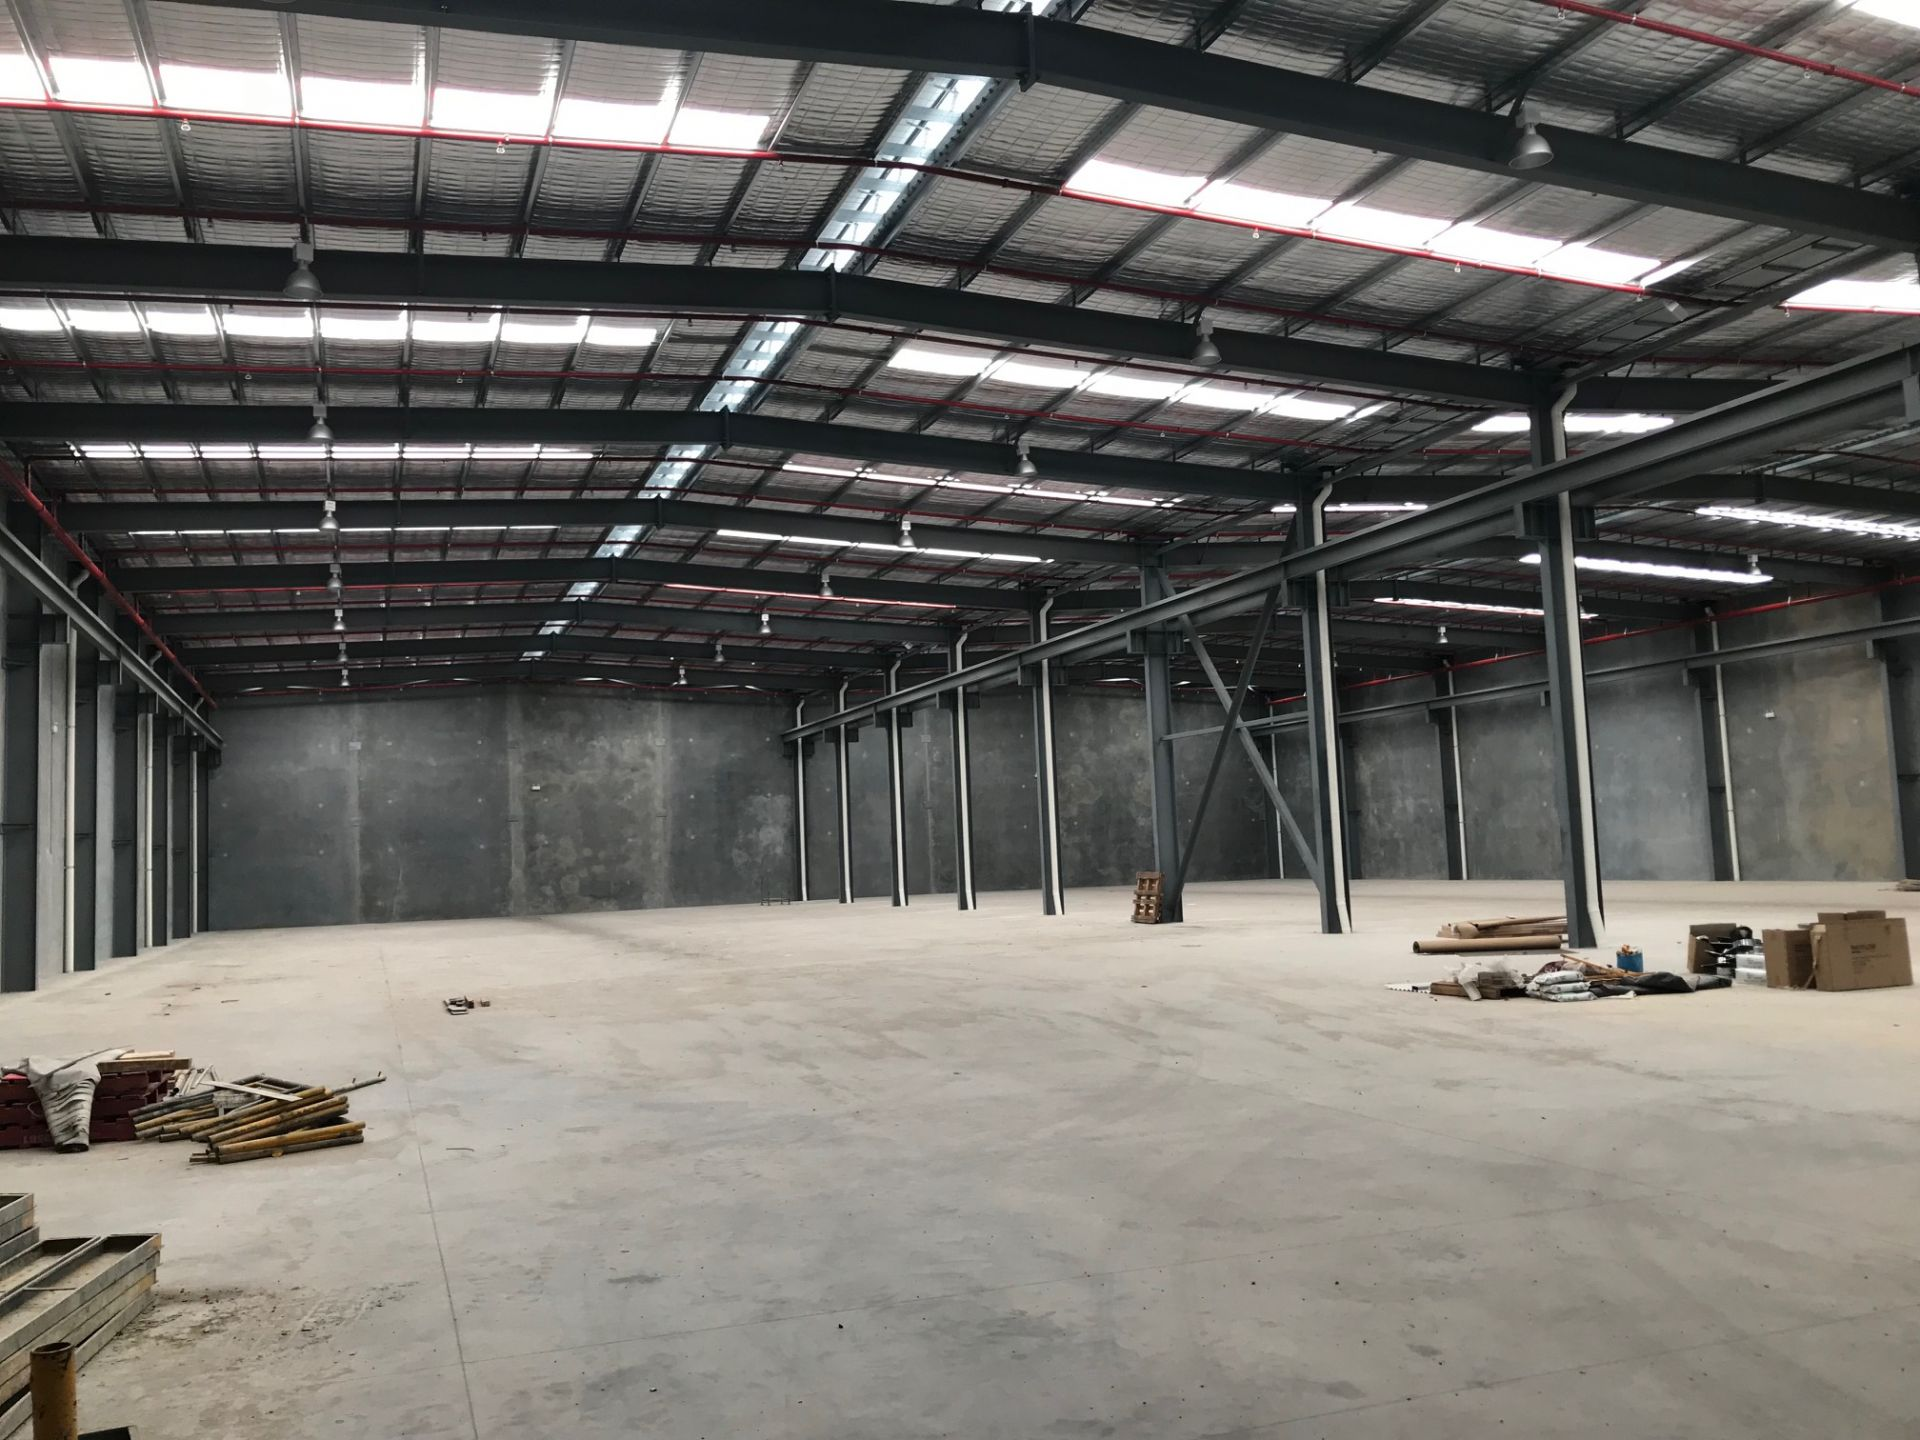 STATE OF THE ART INDUSTRIAL FACILITY